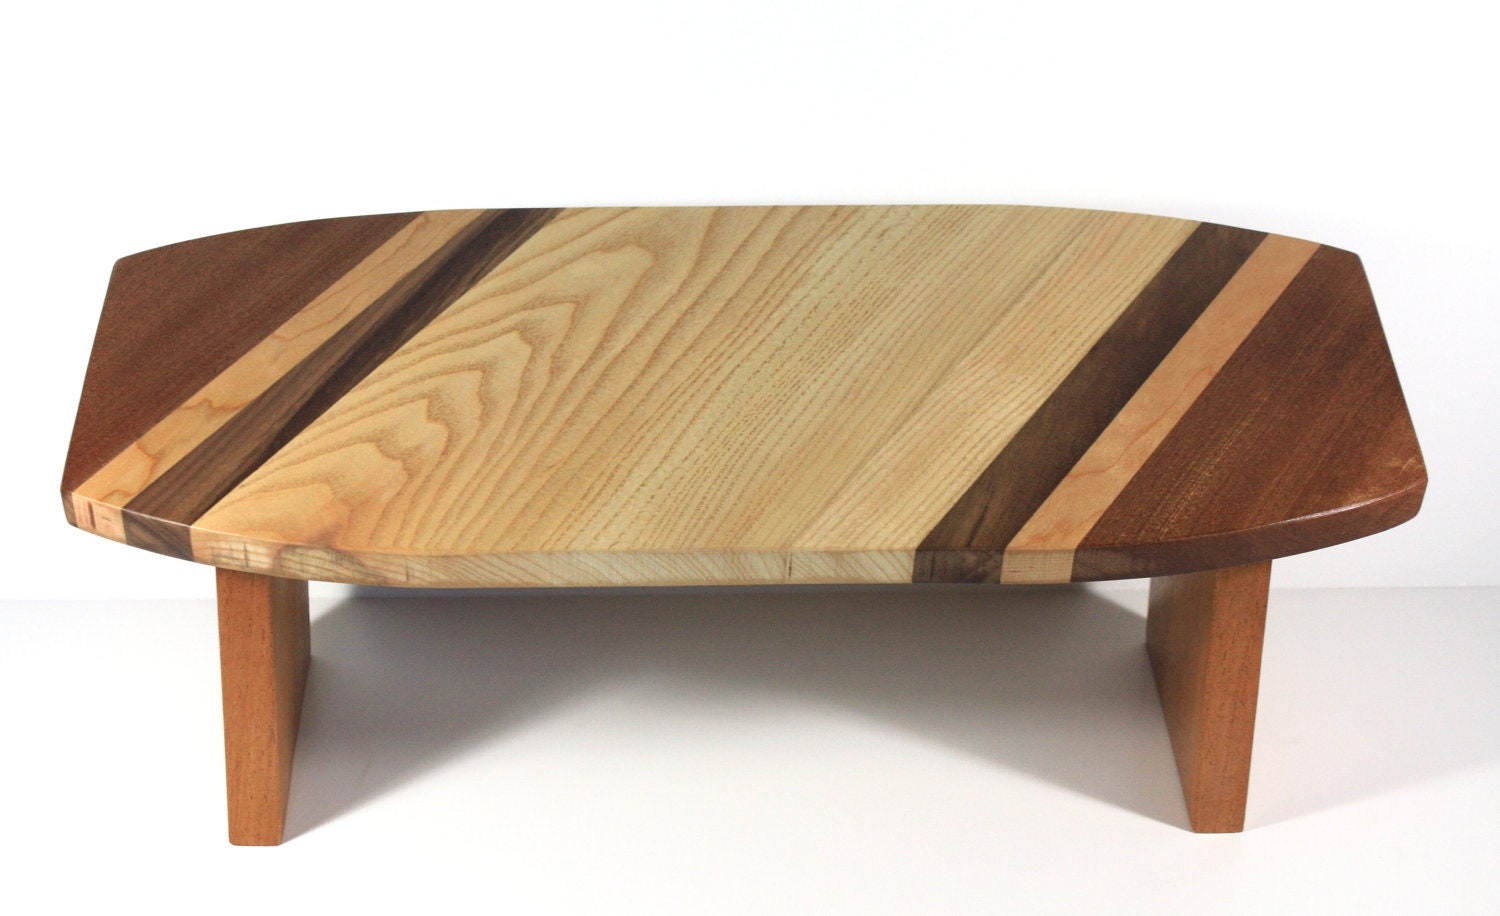 Meditation Bench Folding 28 Images Meditation Bench Folding Bottom By Stillpointwoodworks